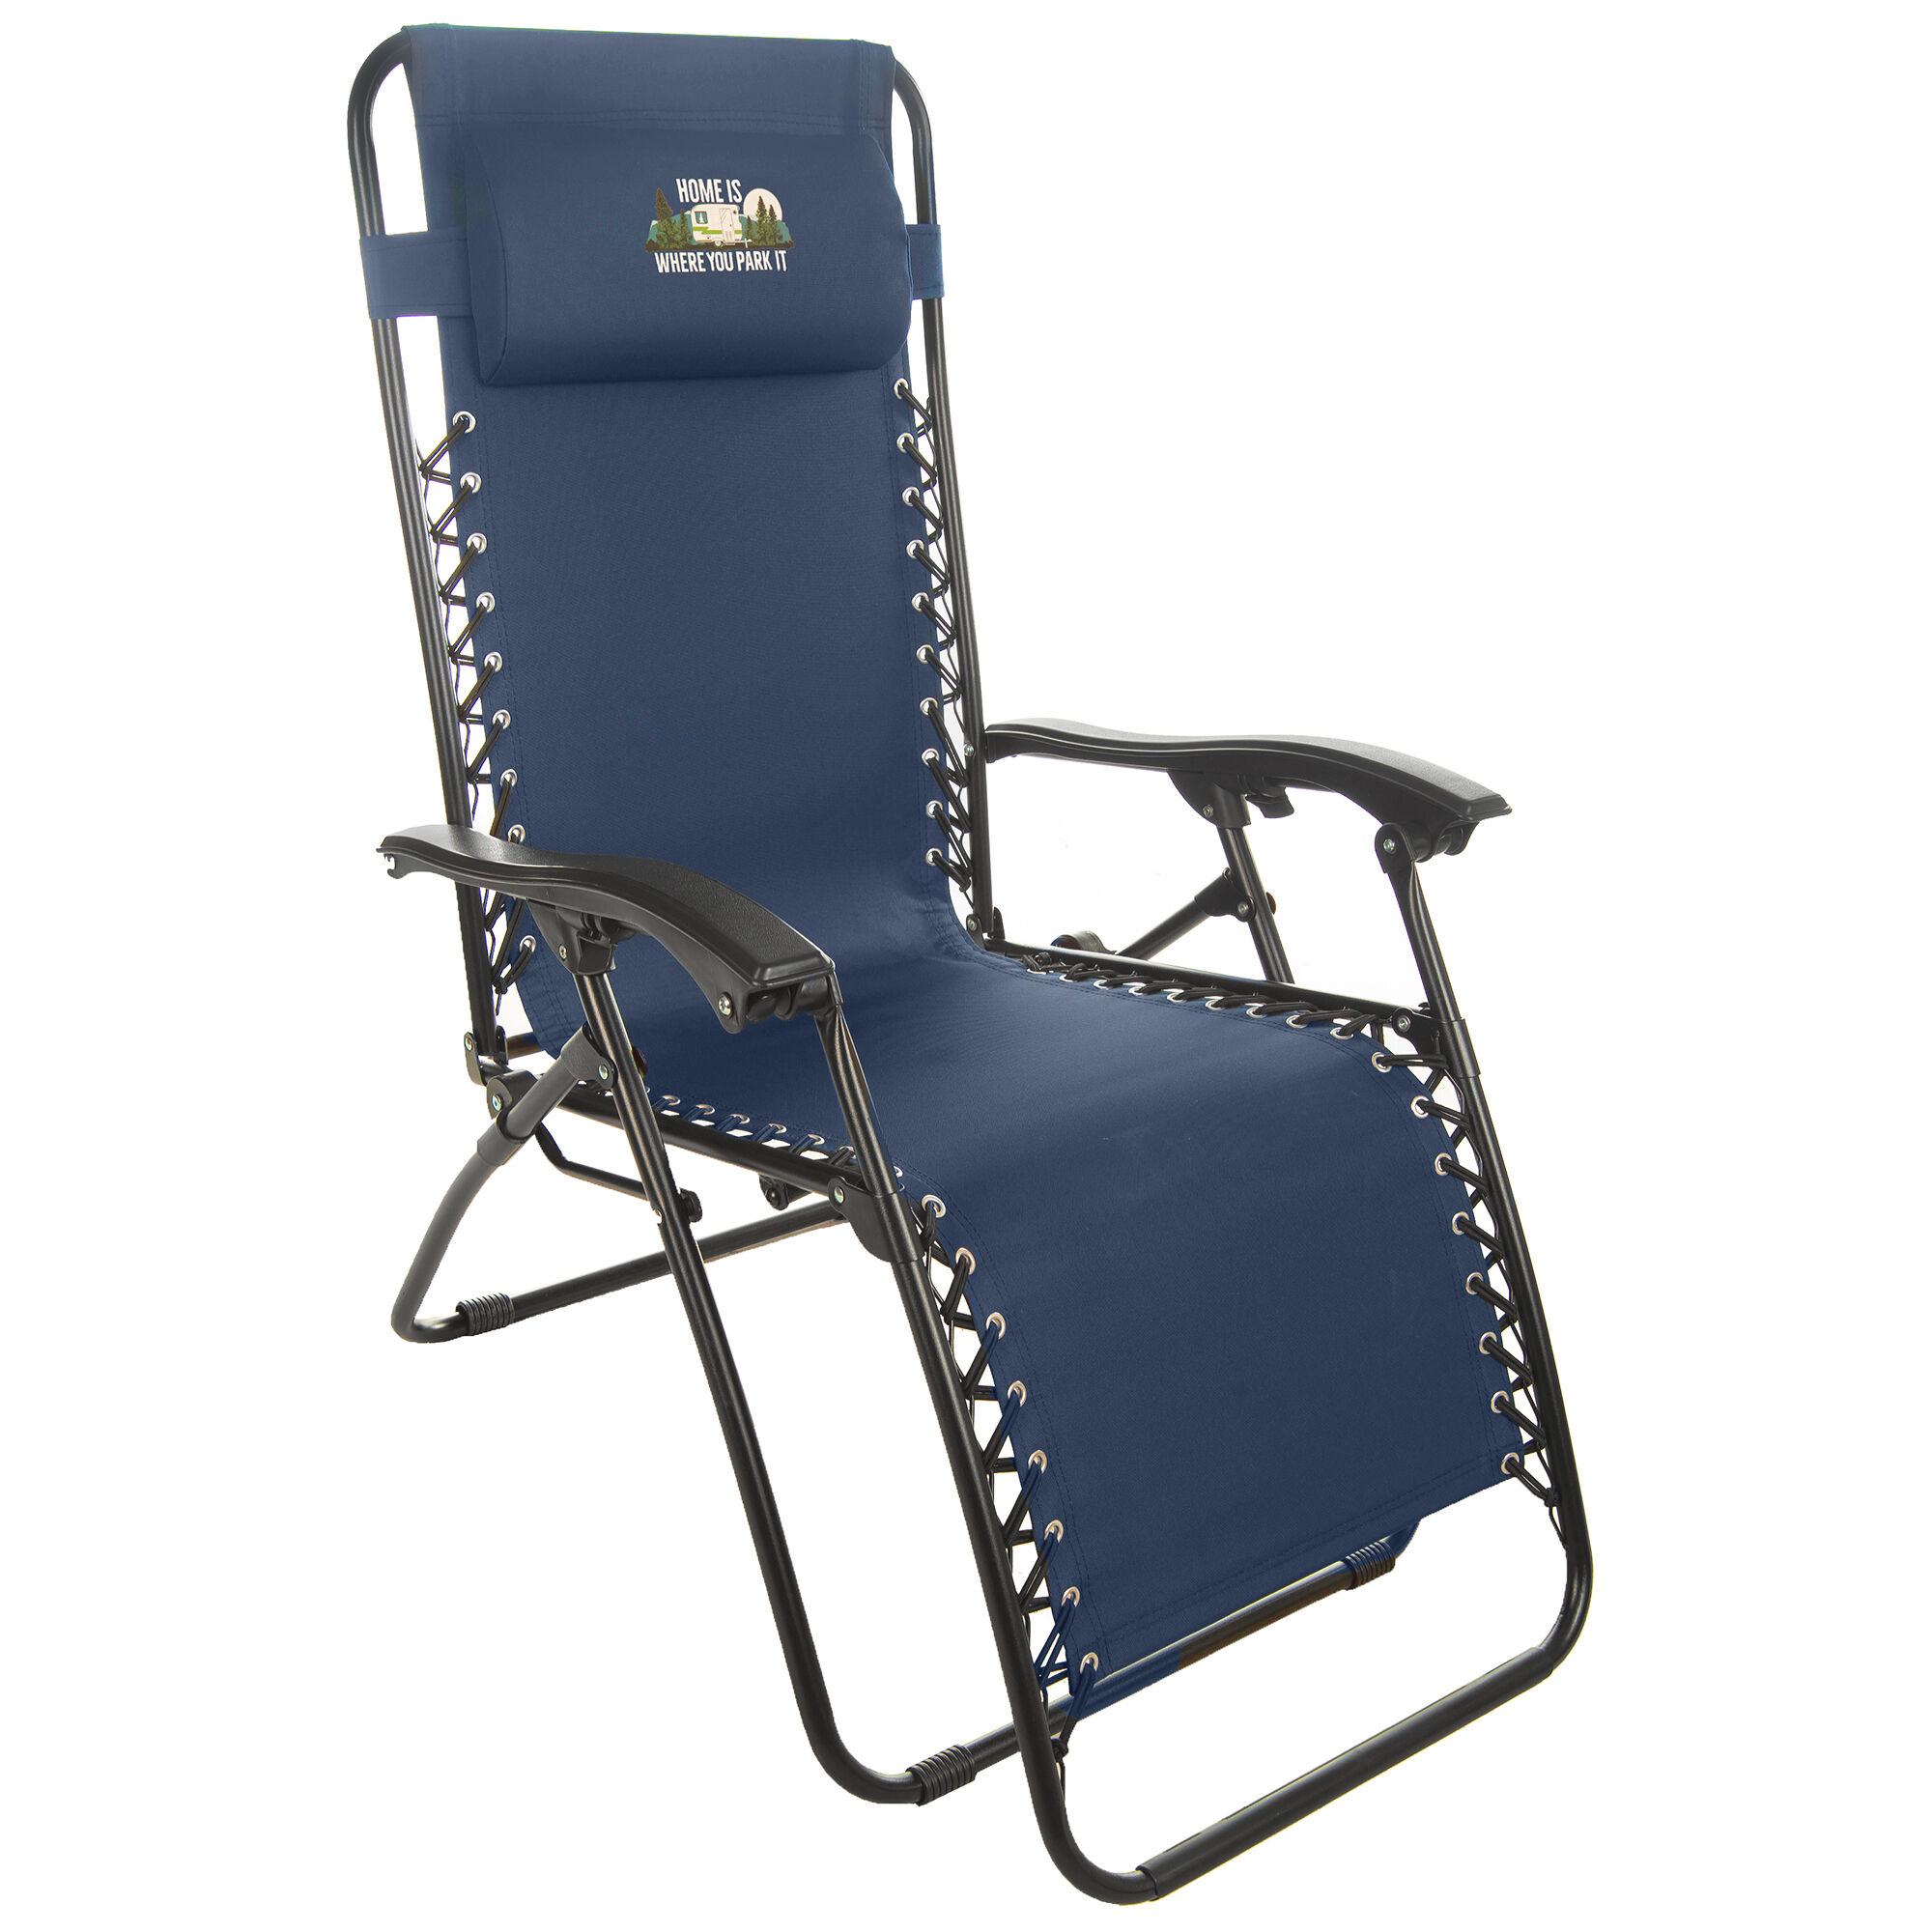 Home Is Where You Park It Recliner Chair